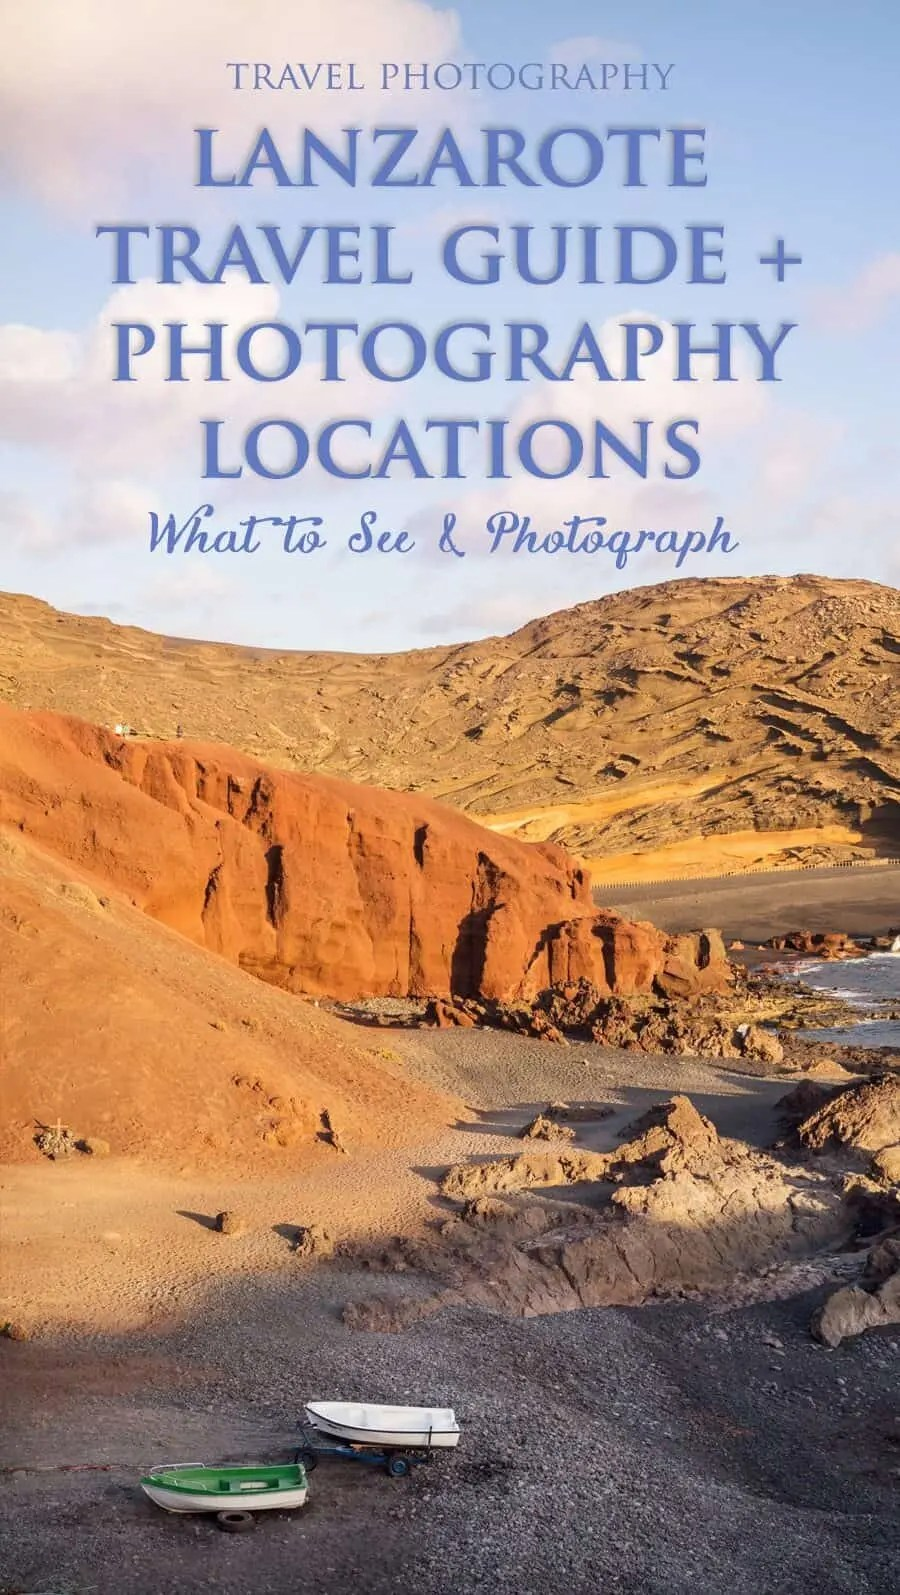 Lanzarote Photography Locations and Travel Guide, a list of the most beautiful places on Lanzarote and where to stay.